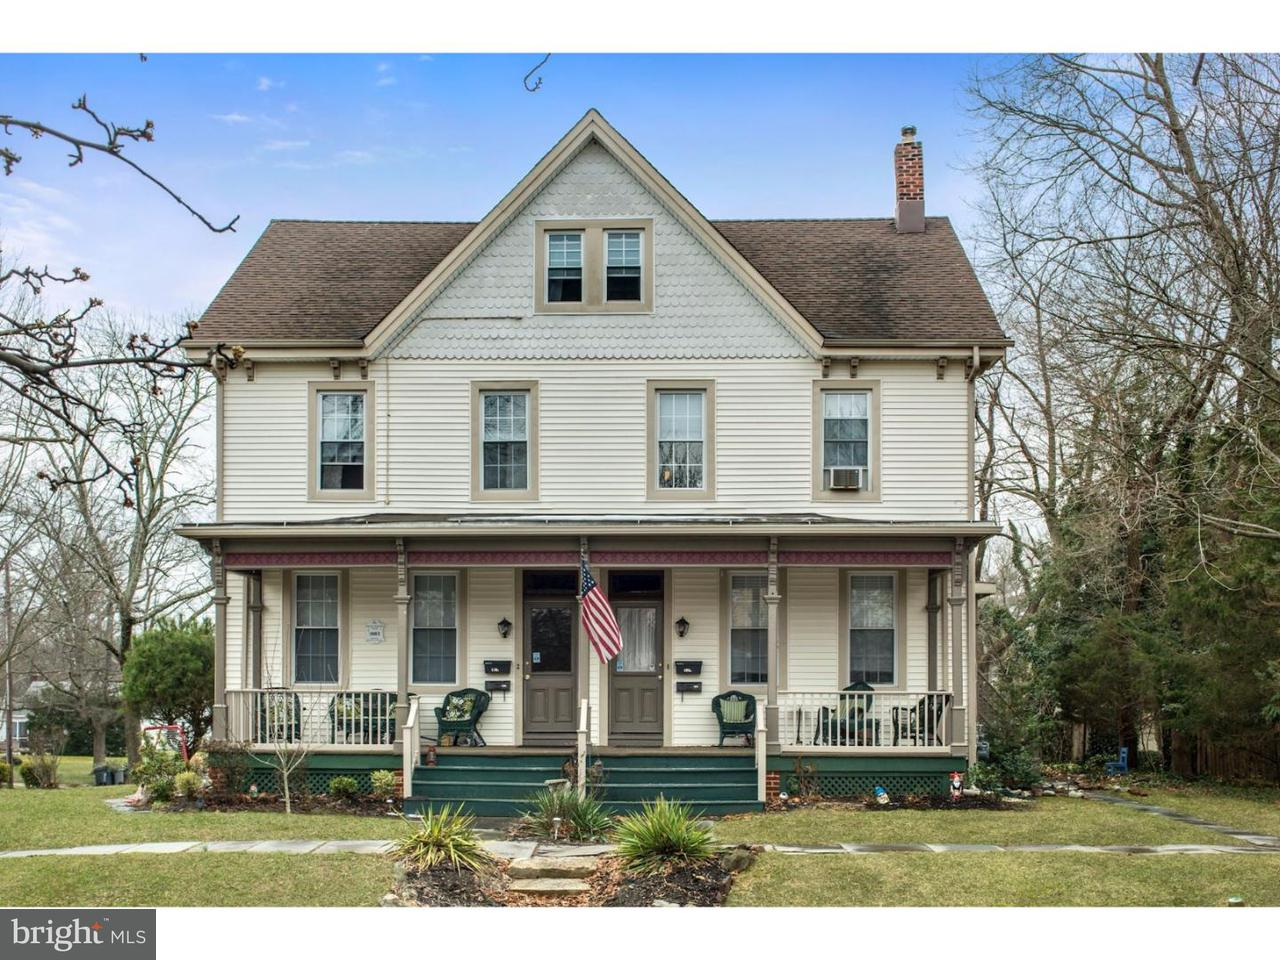 Single Family Home for Sale at 108-110 E ELM Street Wenonah, New Jersey 08090 United States